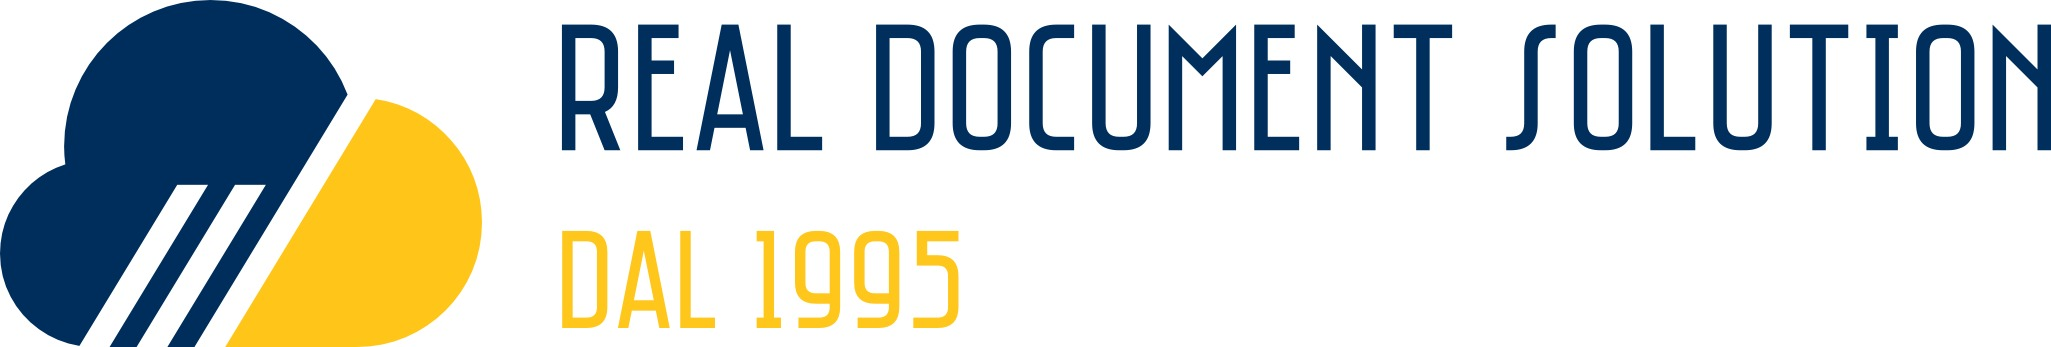 real document solution gestione documentale